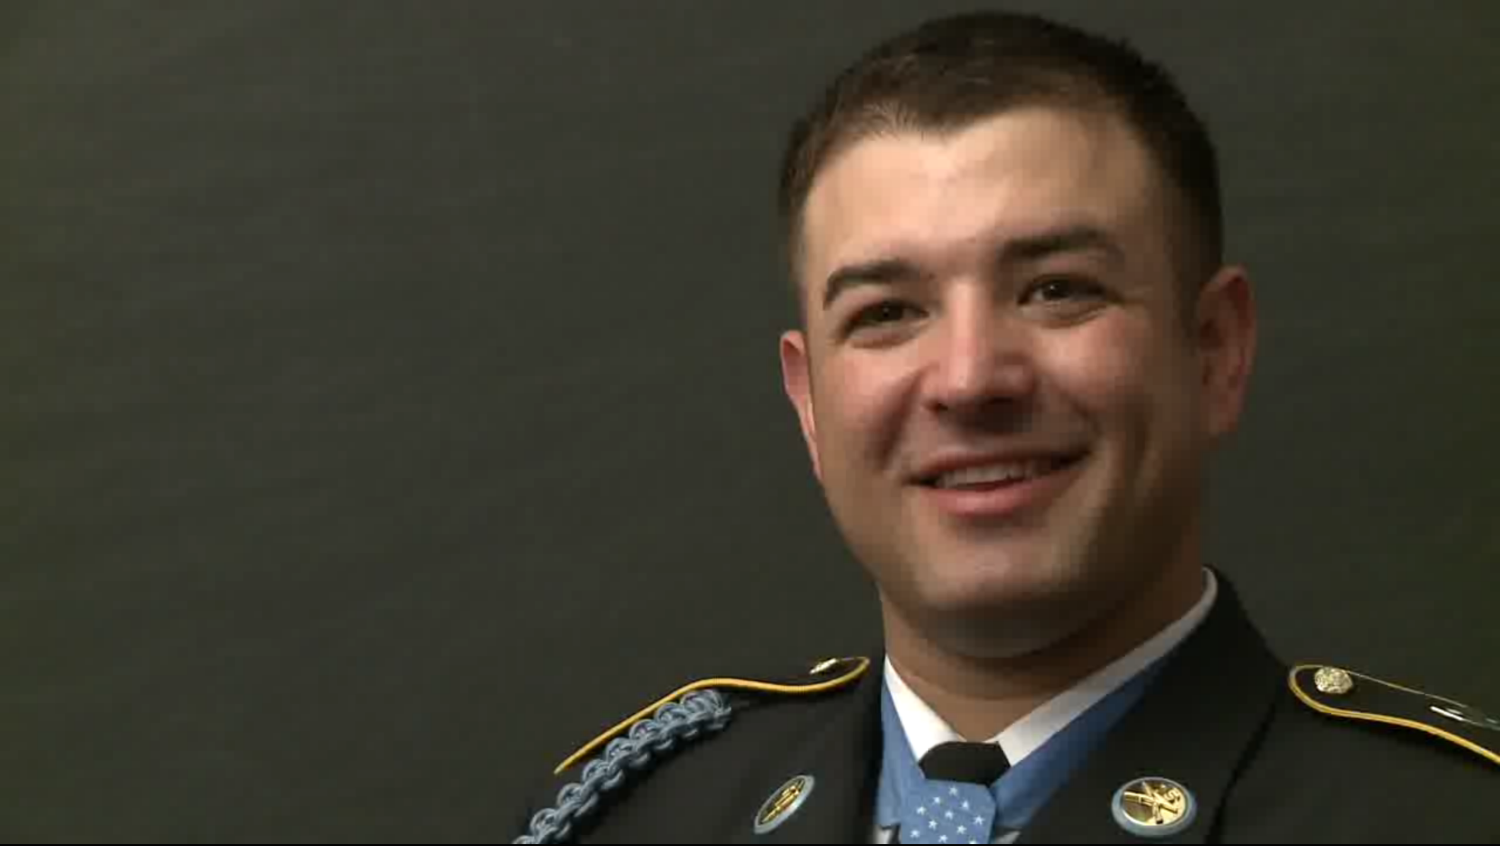 Leroy Petry  interview, still